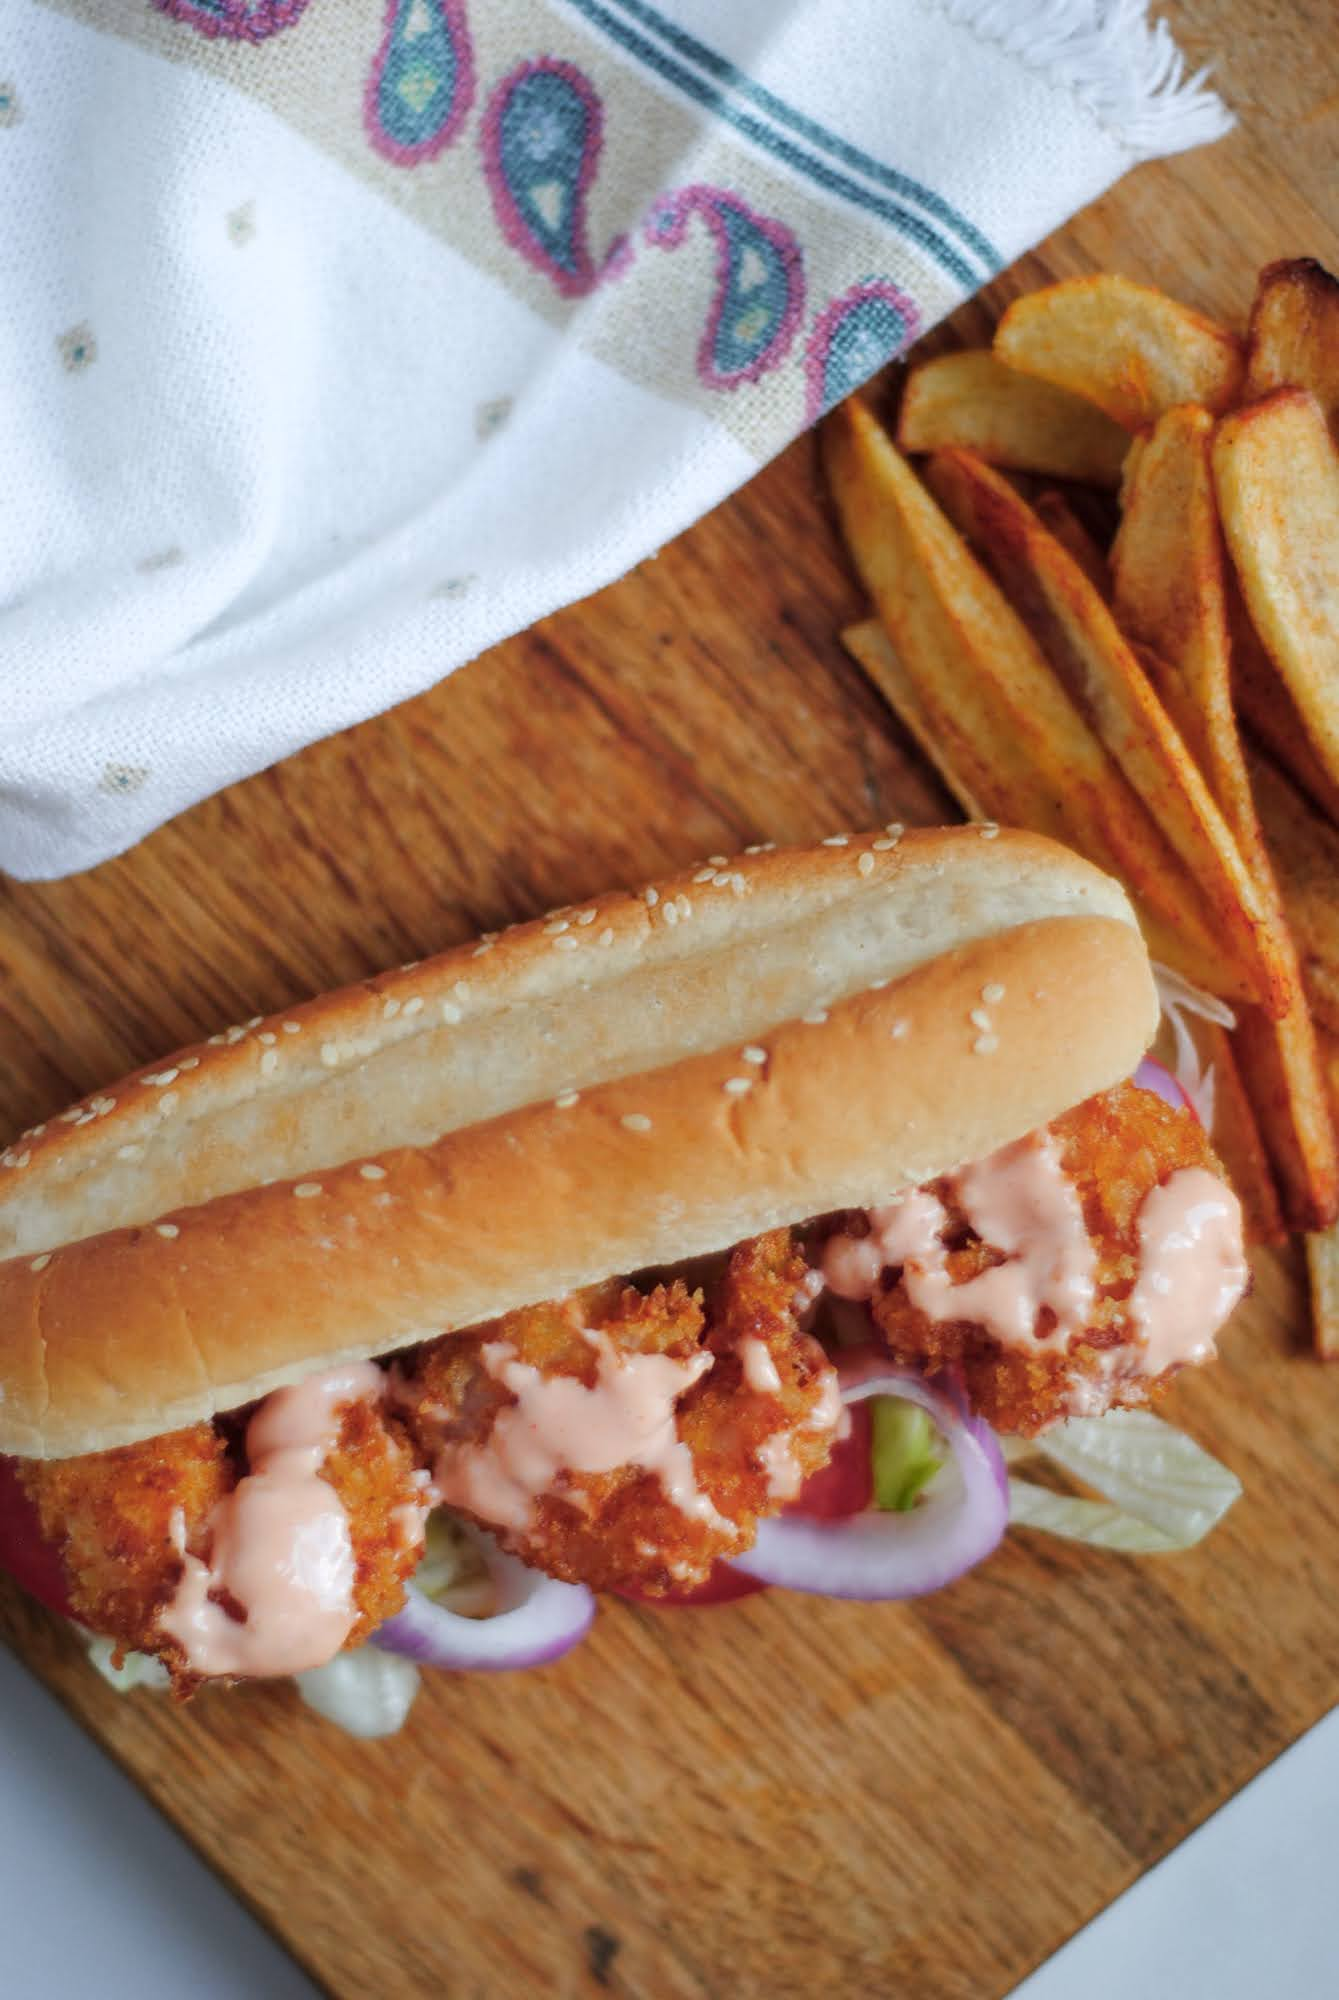 shrimp po'boy sandwich on a wooden board with french fries and a towel on the side.